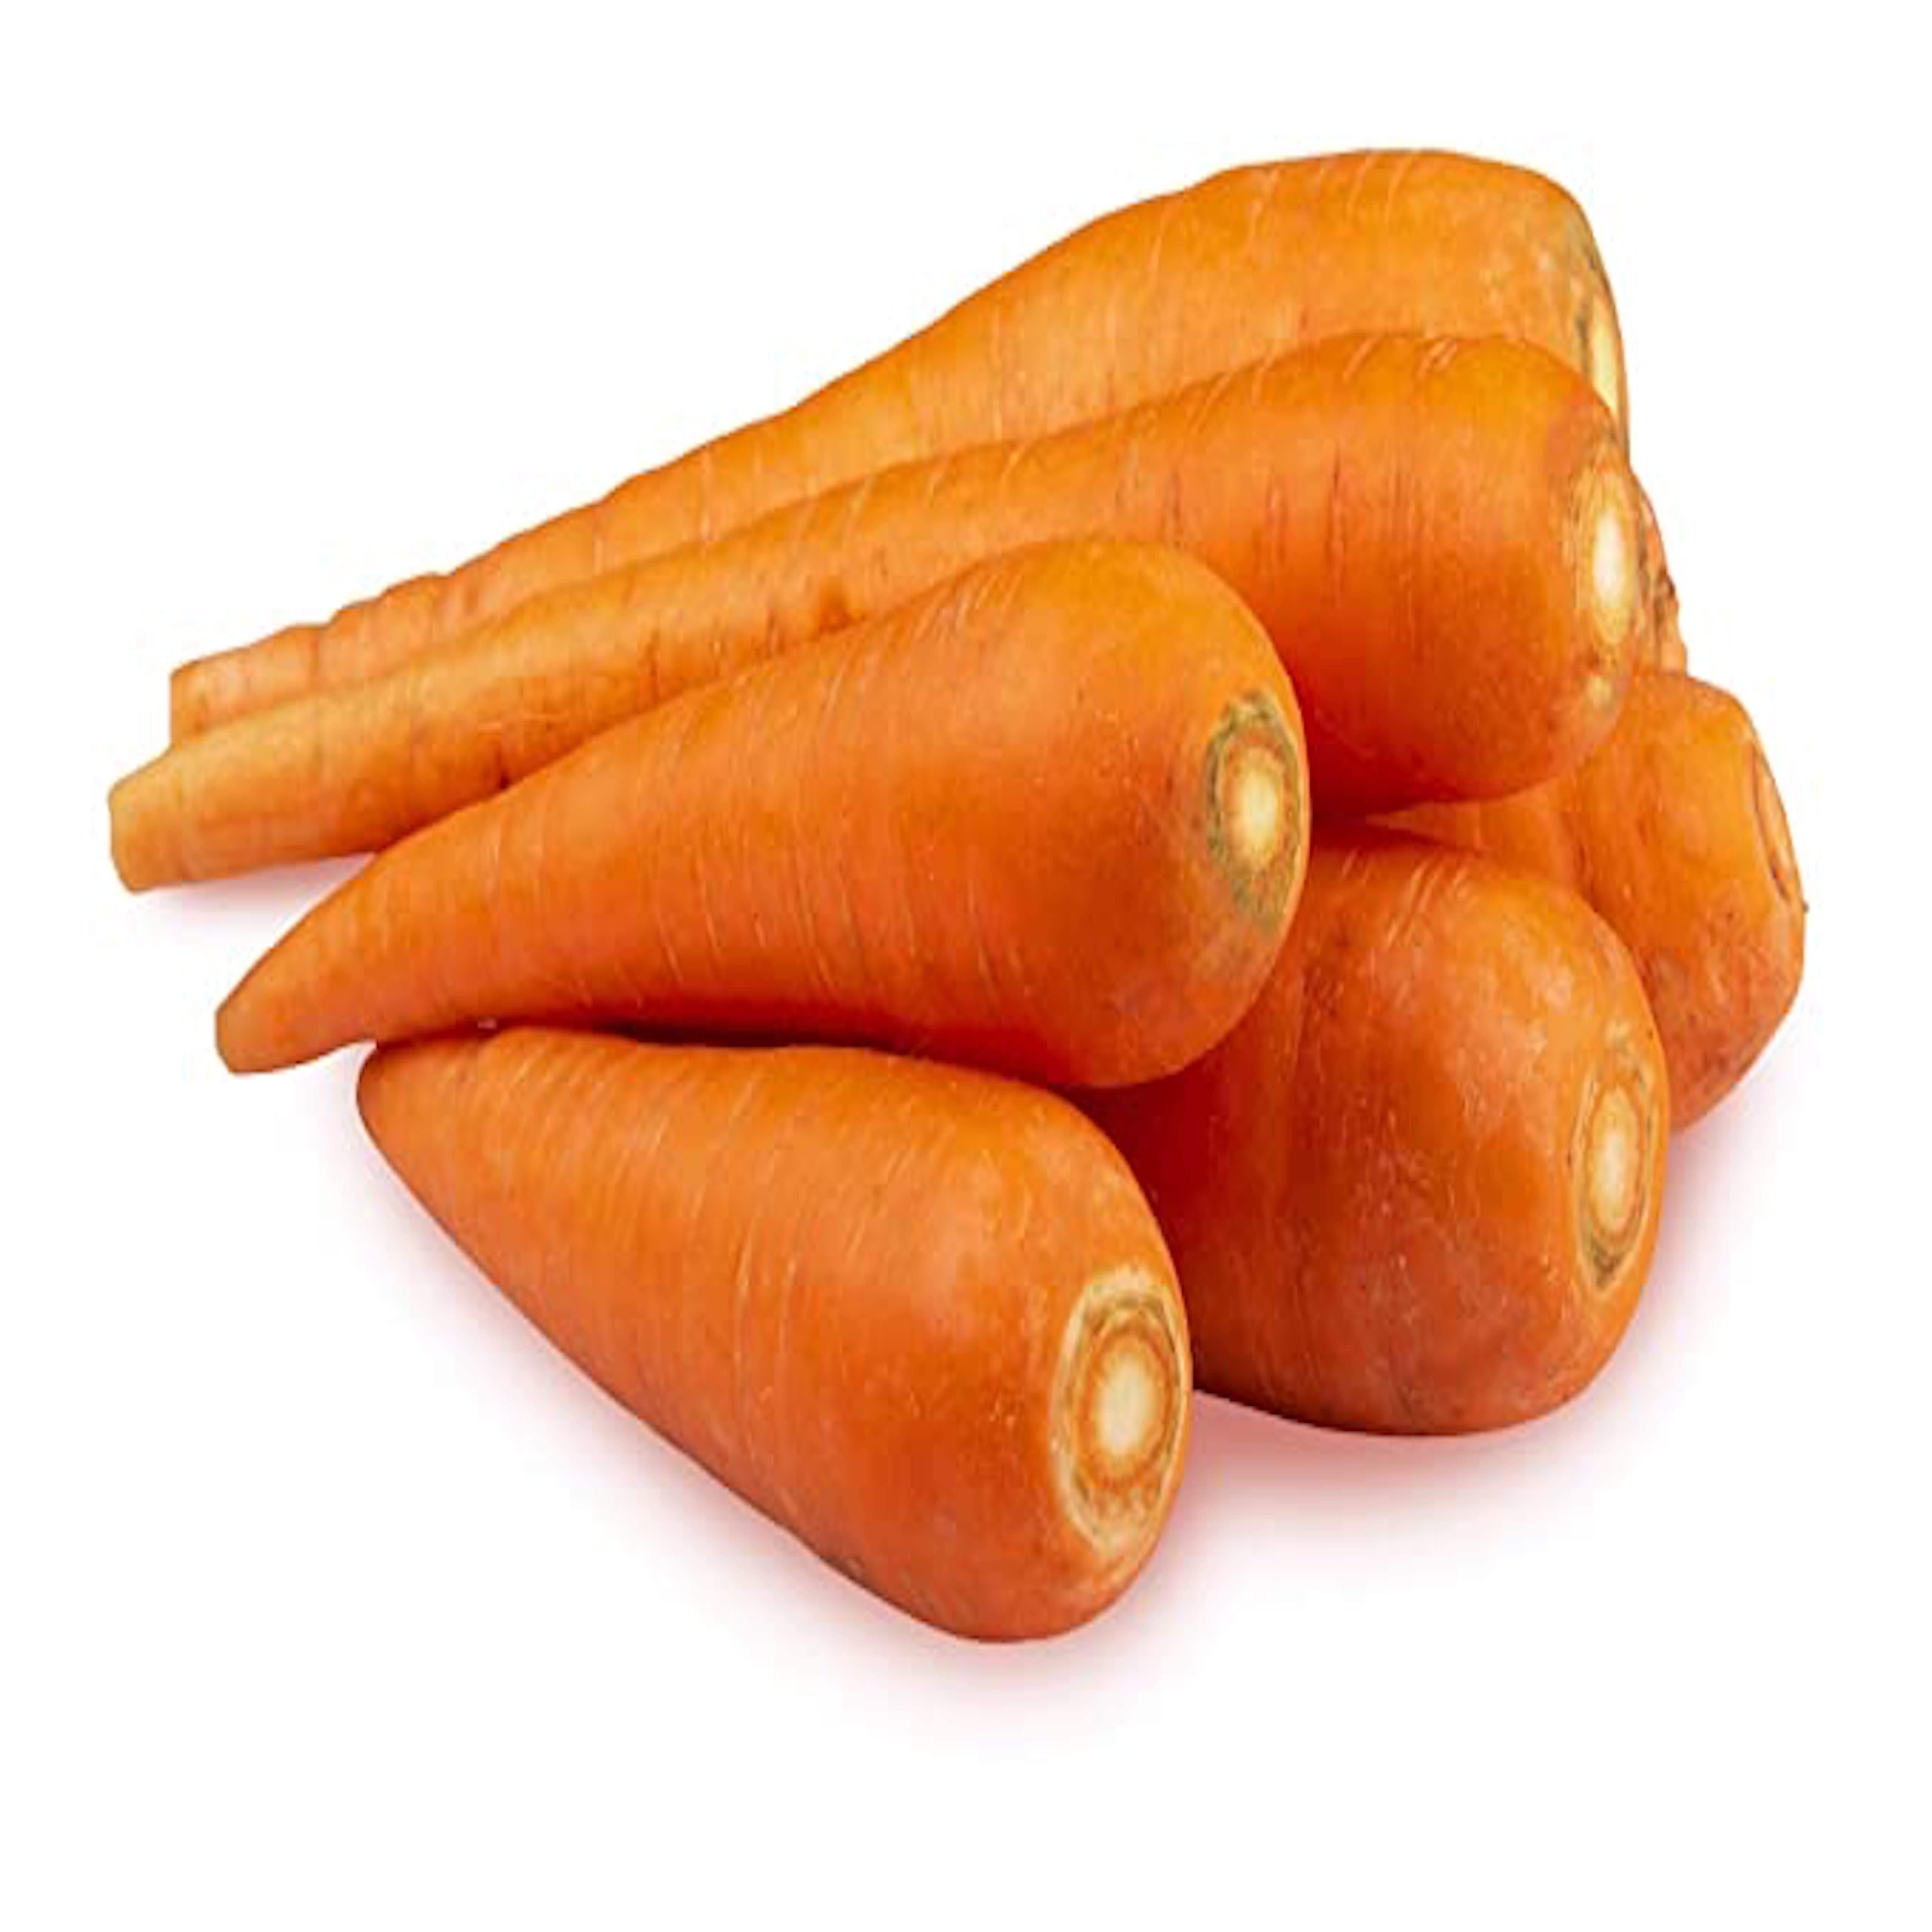 100% Natural Fresh Carrots for sale